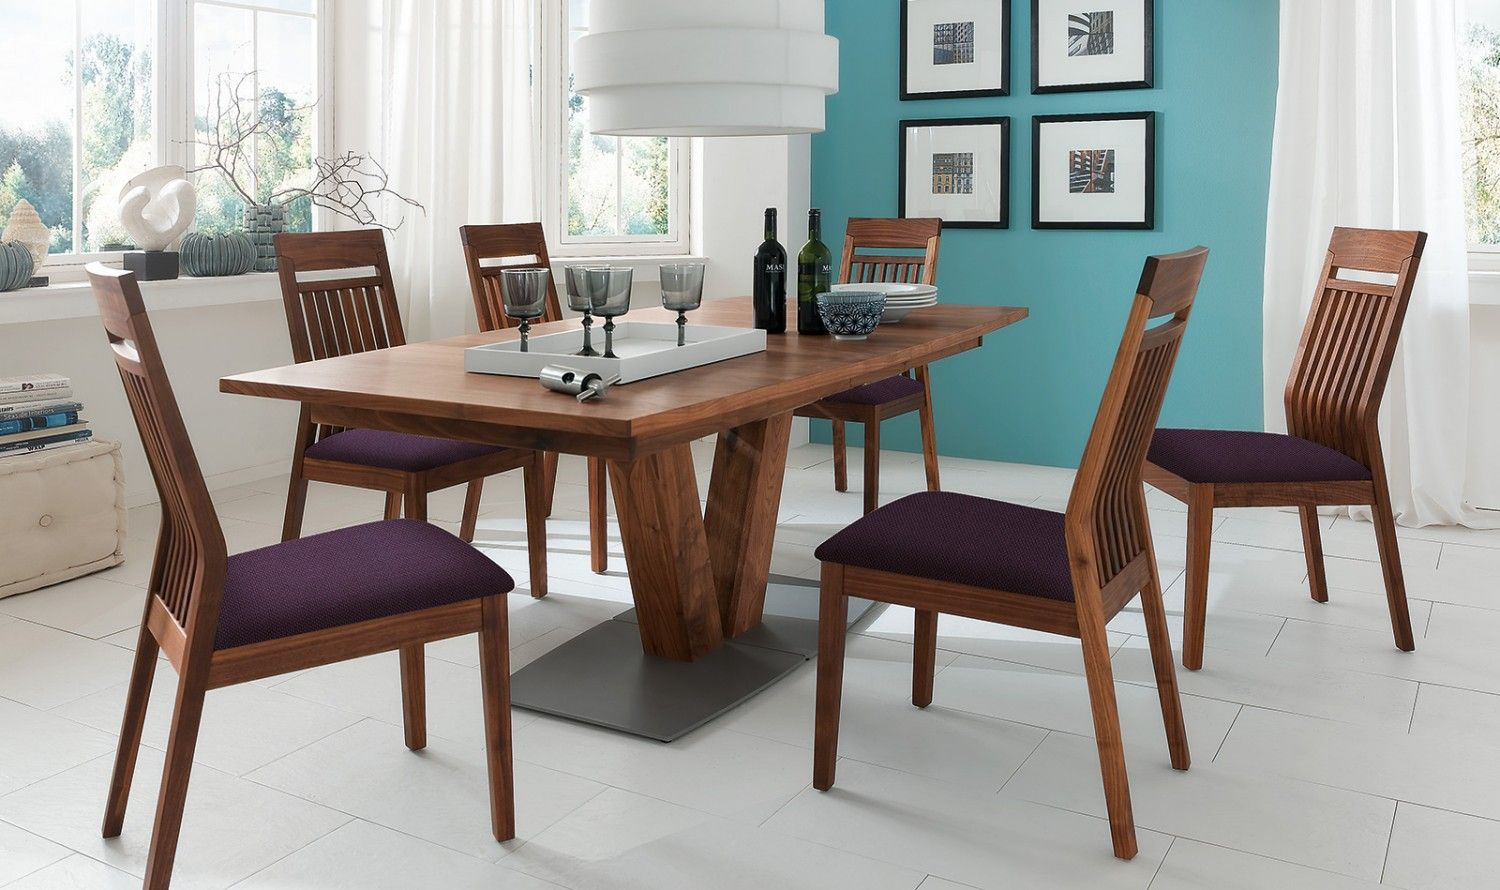 Et537 Extendable Dining Table With Boat Shaped Top Venjakob